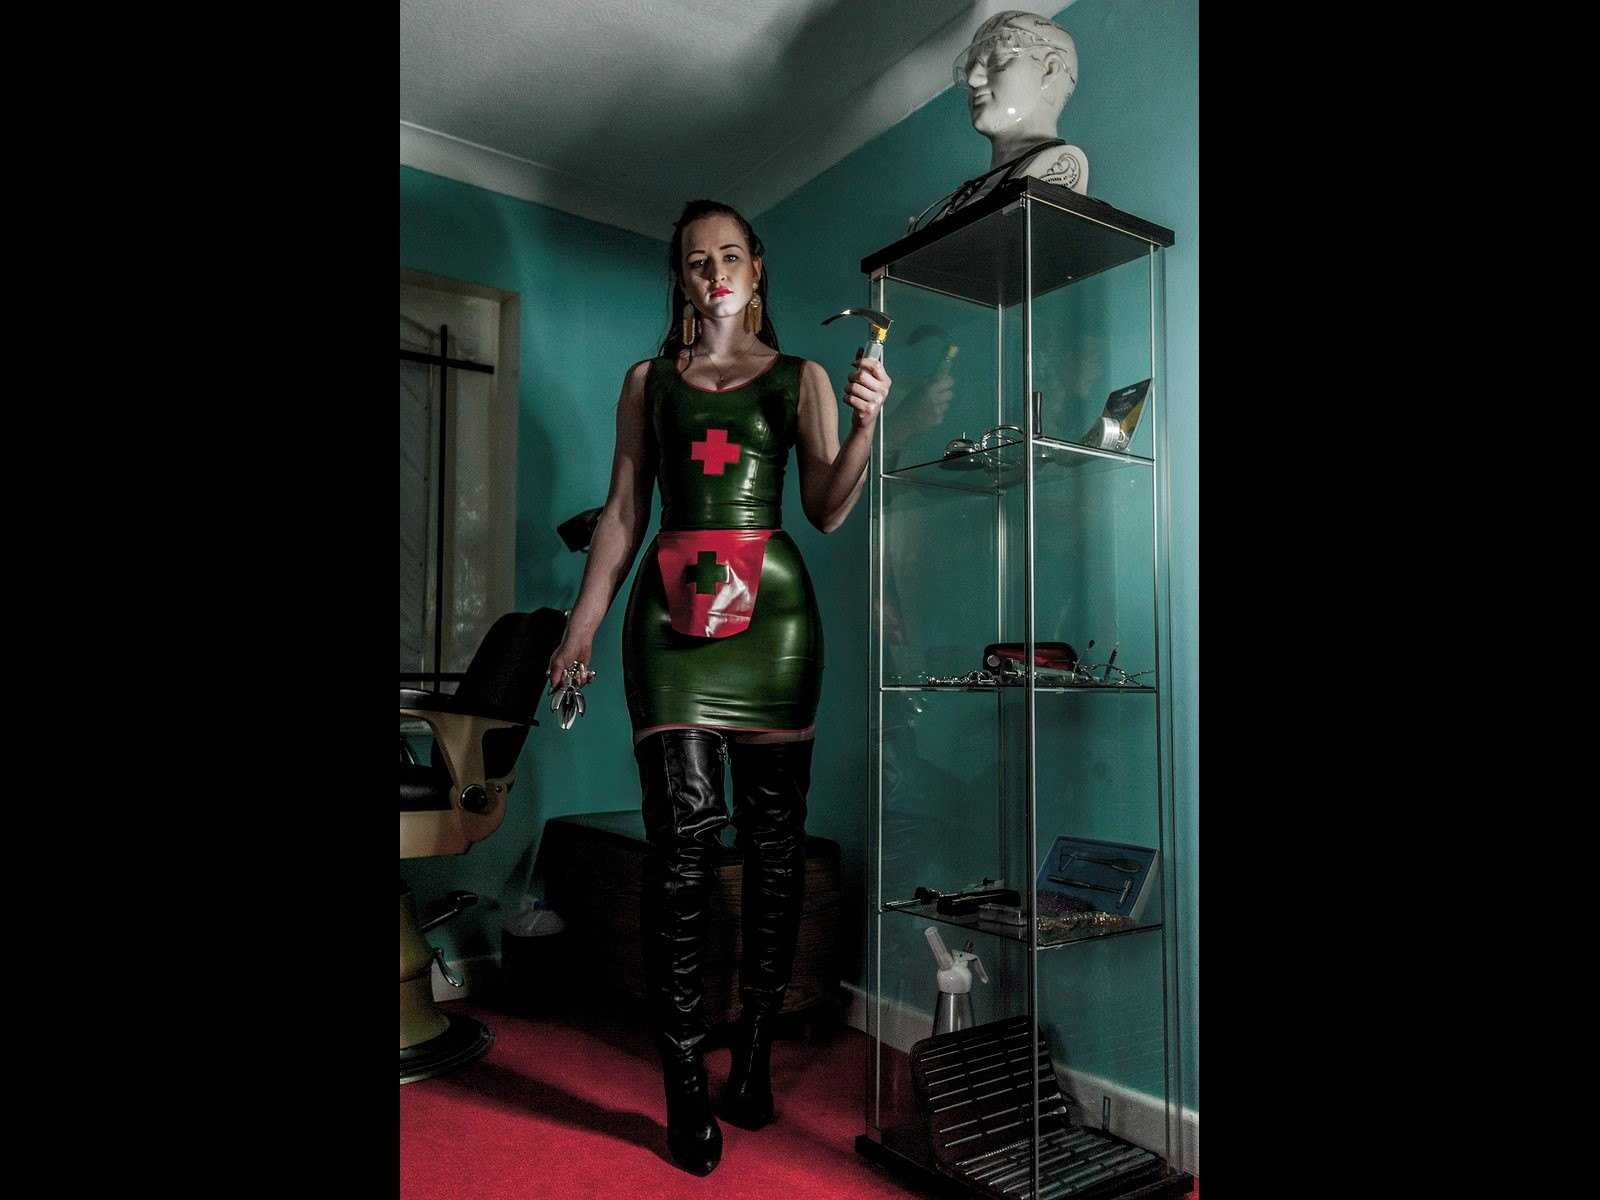 Medical Mistress Fetish BDSM Latex Derby Celestial Studios Dungeon Hire